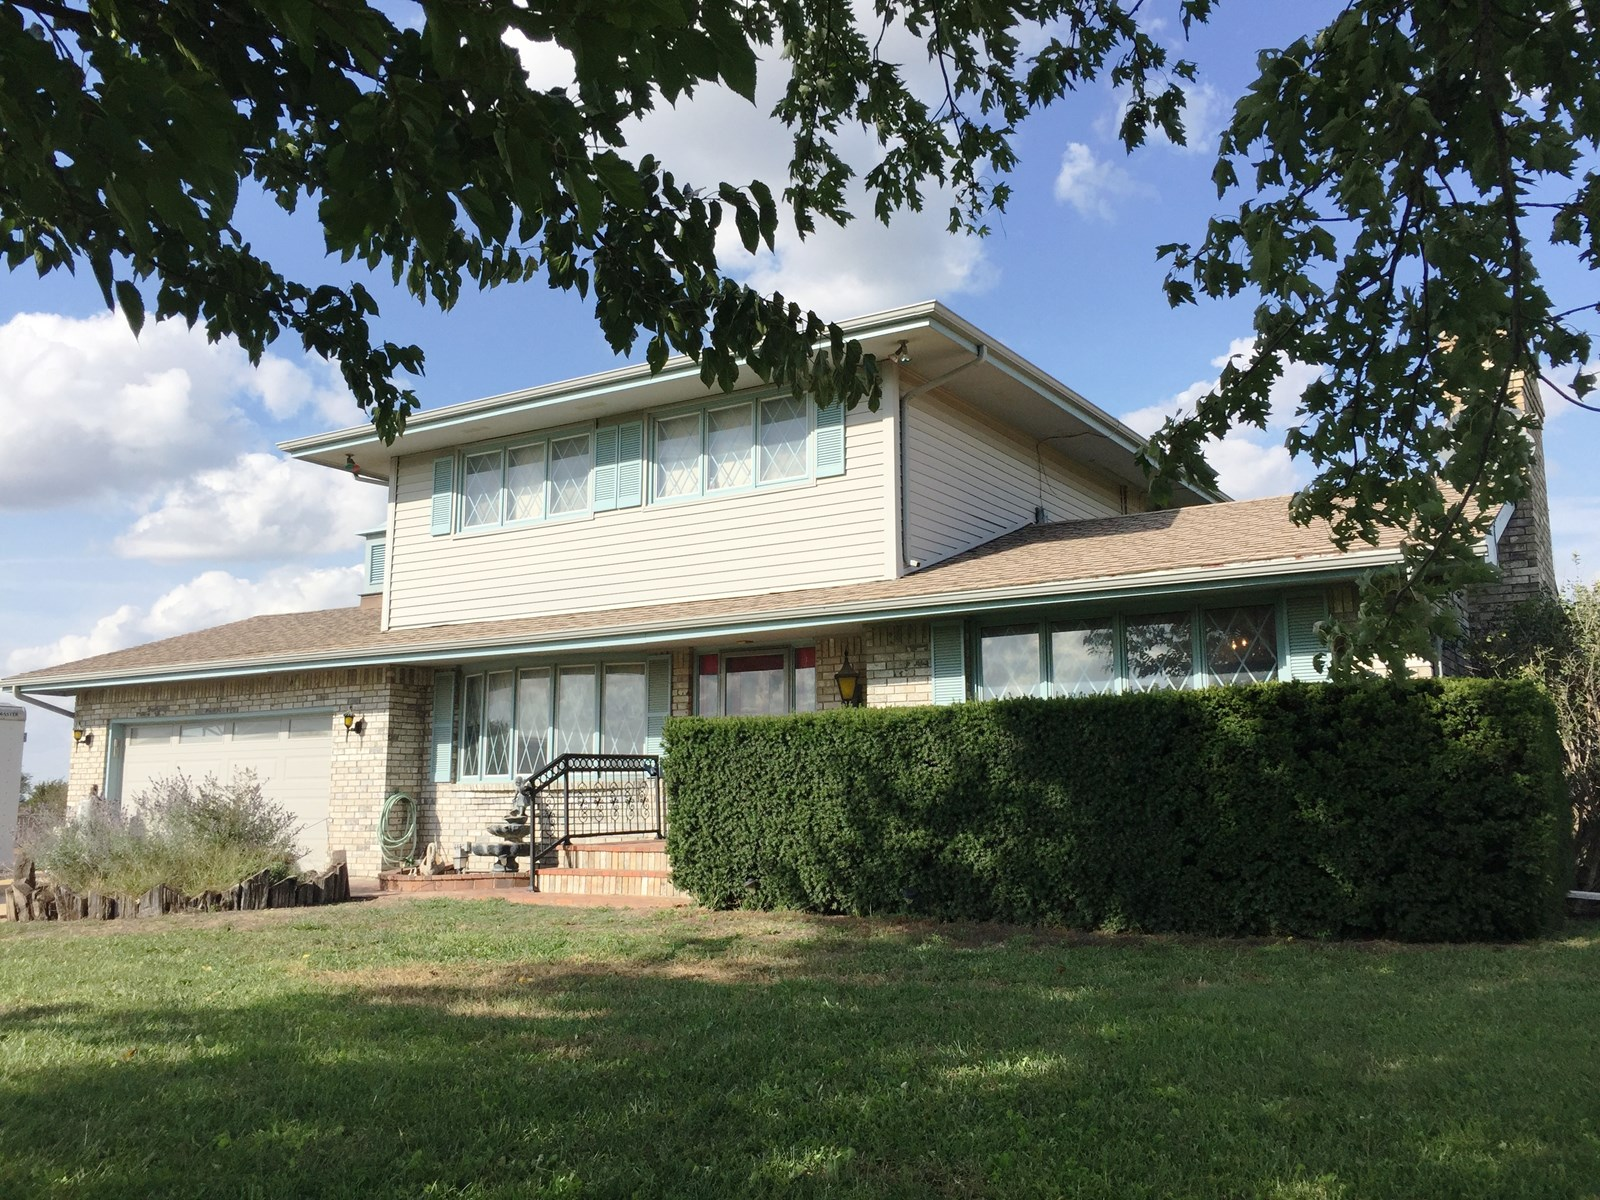 AUCTION CANCELLED - 2 STORY HOME,  9.57 ACRES, GREAT LOCATION, WICHITA, KS